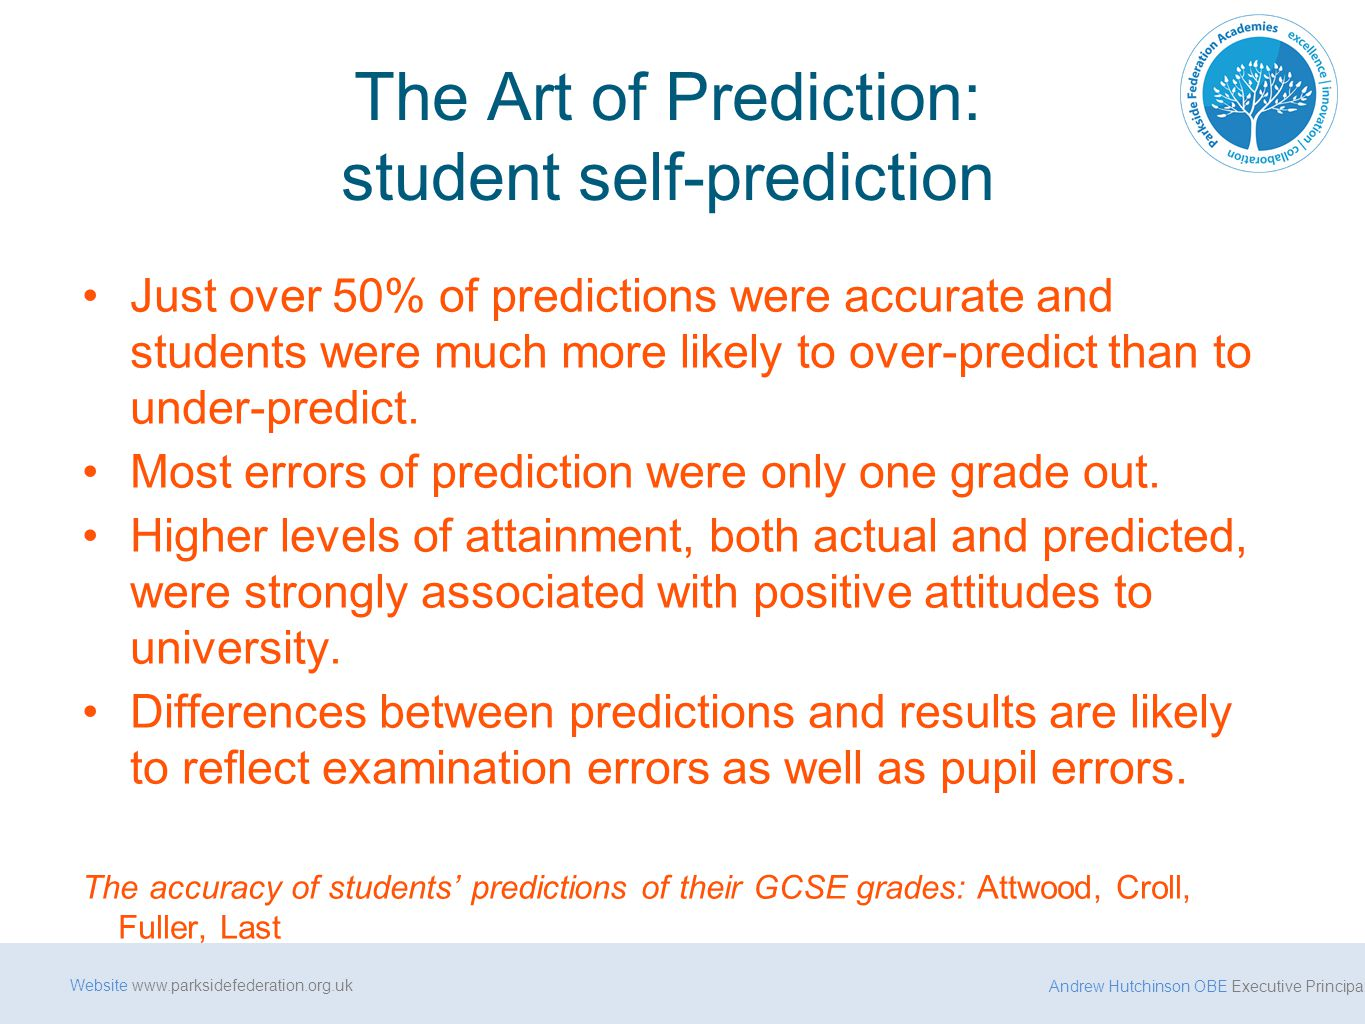 Andrew Hutchinson OBE Executive Principal Website www.parksidefederation.org.uk The Art of Prediction: student self-prediction Just over 50% of predictions were accurate and students were much more likely to over-predict than to under-predict.